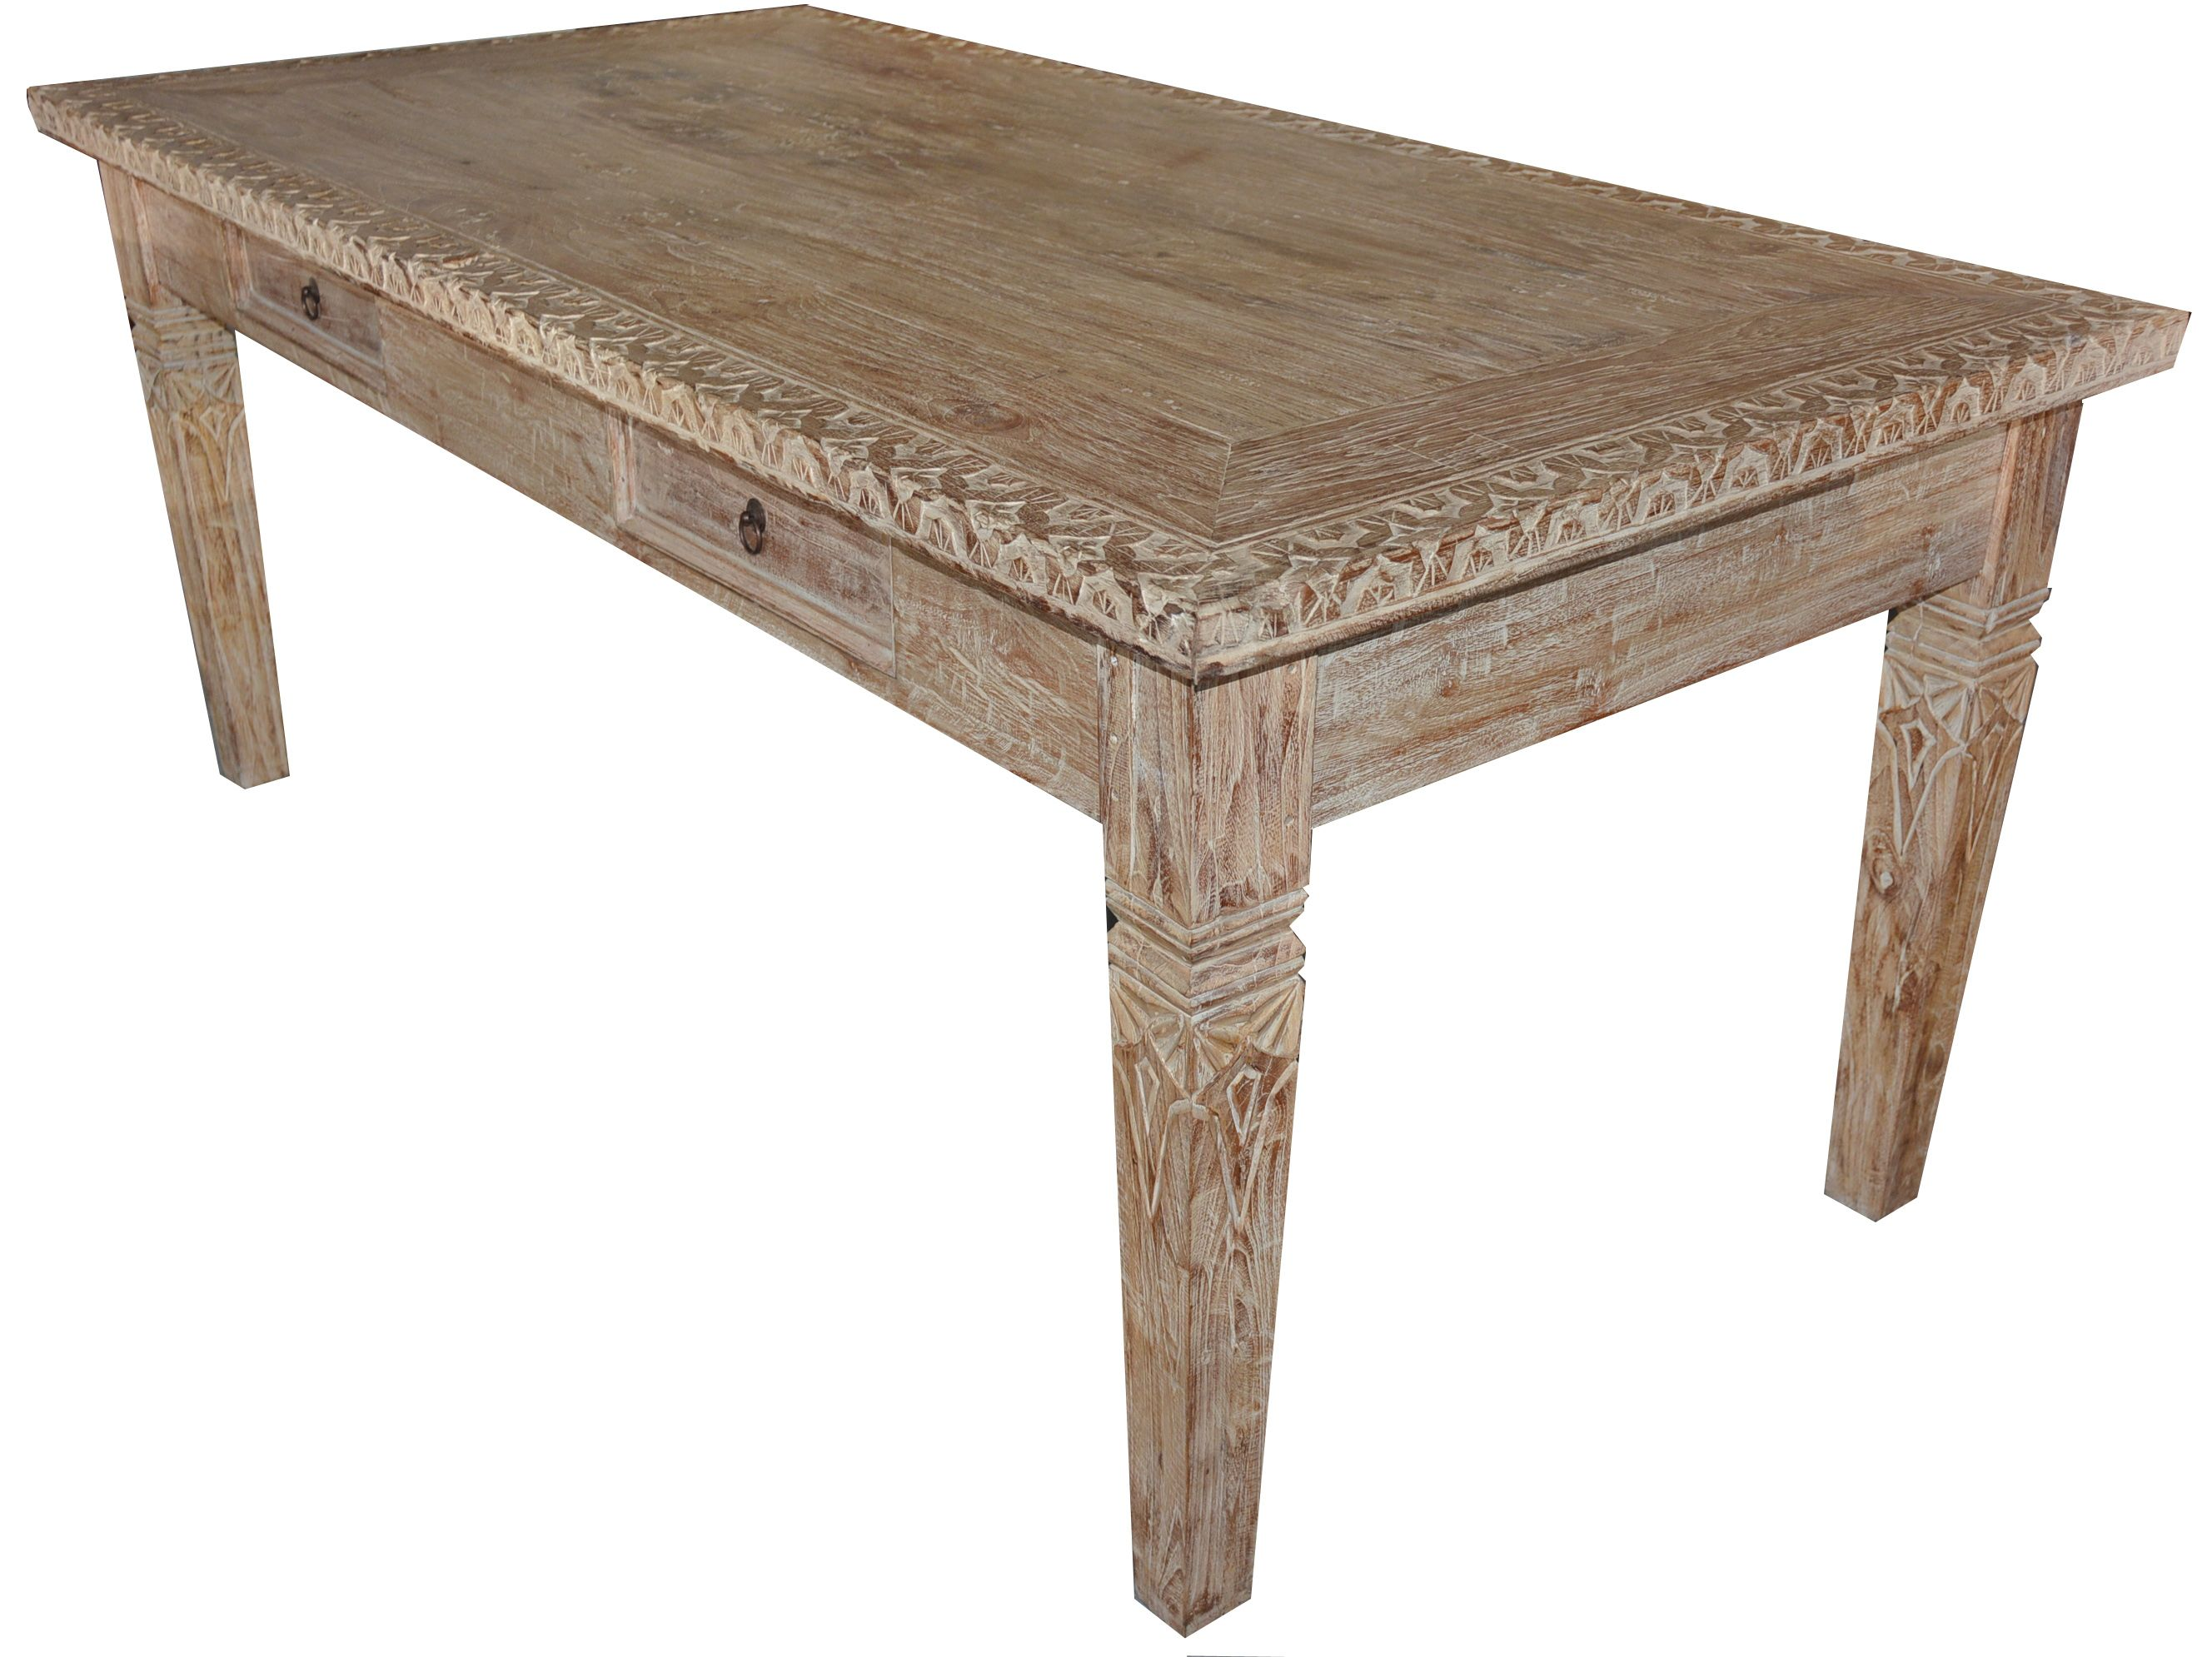 Hand carved teak wood dining table w/ white washed finish